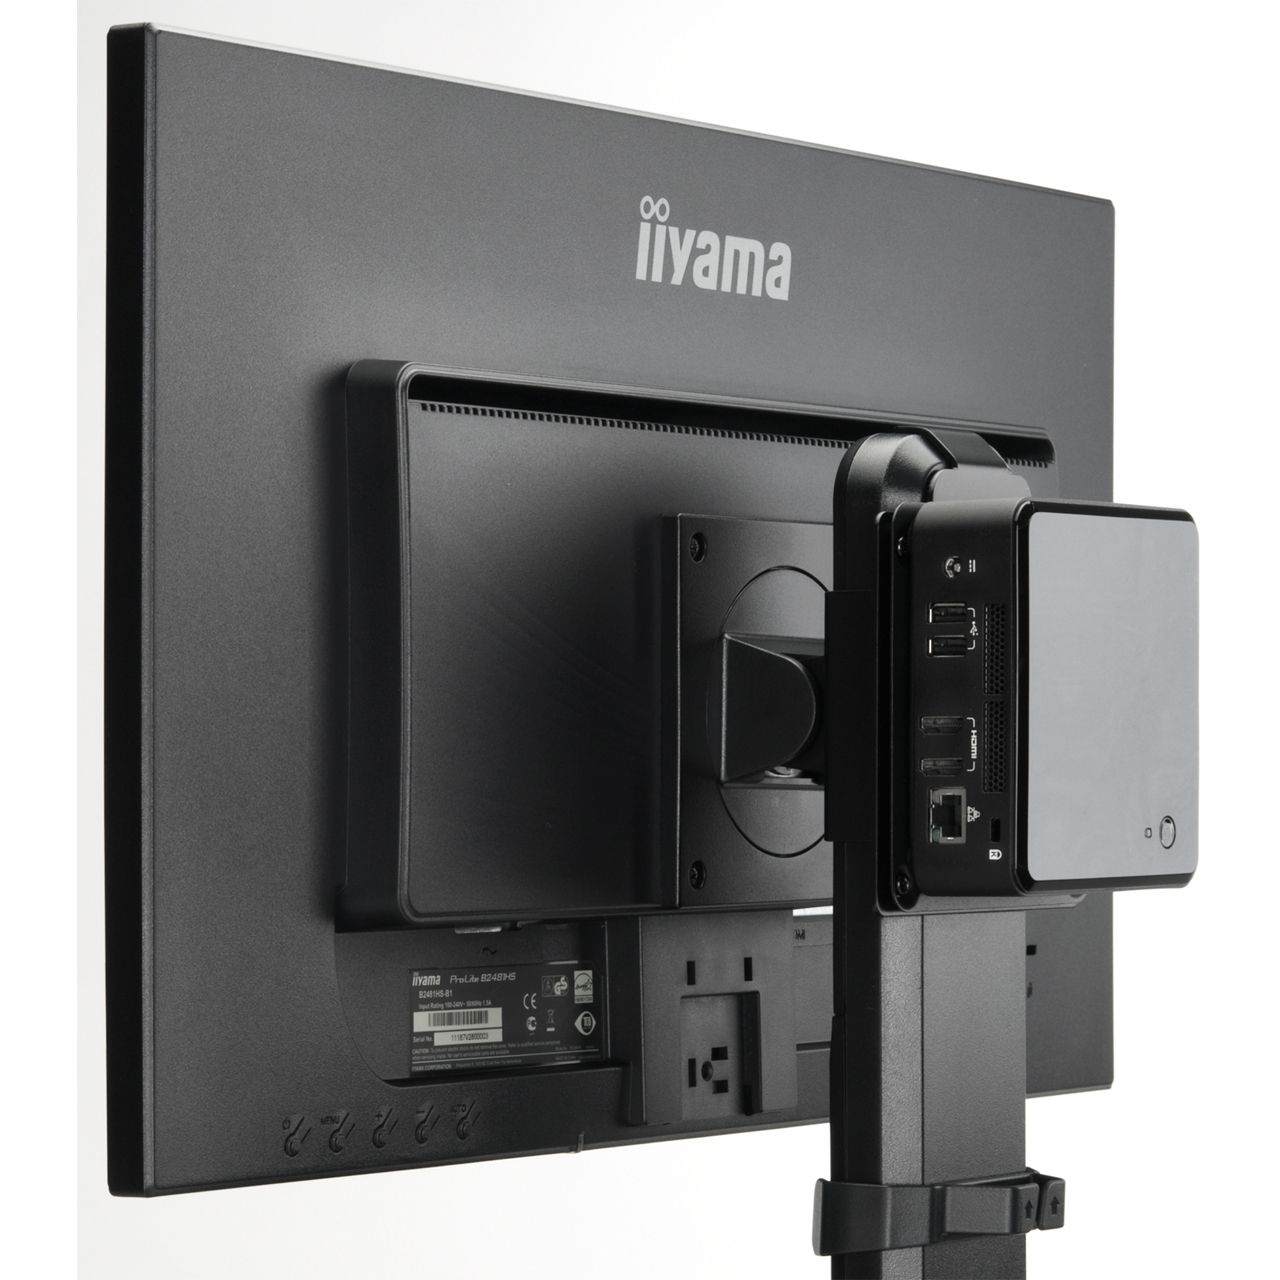 iiyama halterung f r mini pc md brpcv01 zubeh r f r monitore. Black Bedroom Furniture Sets. Home Design Ideas